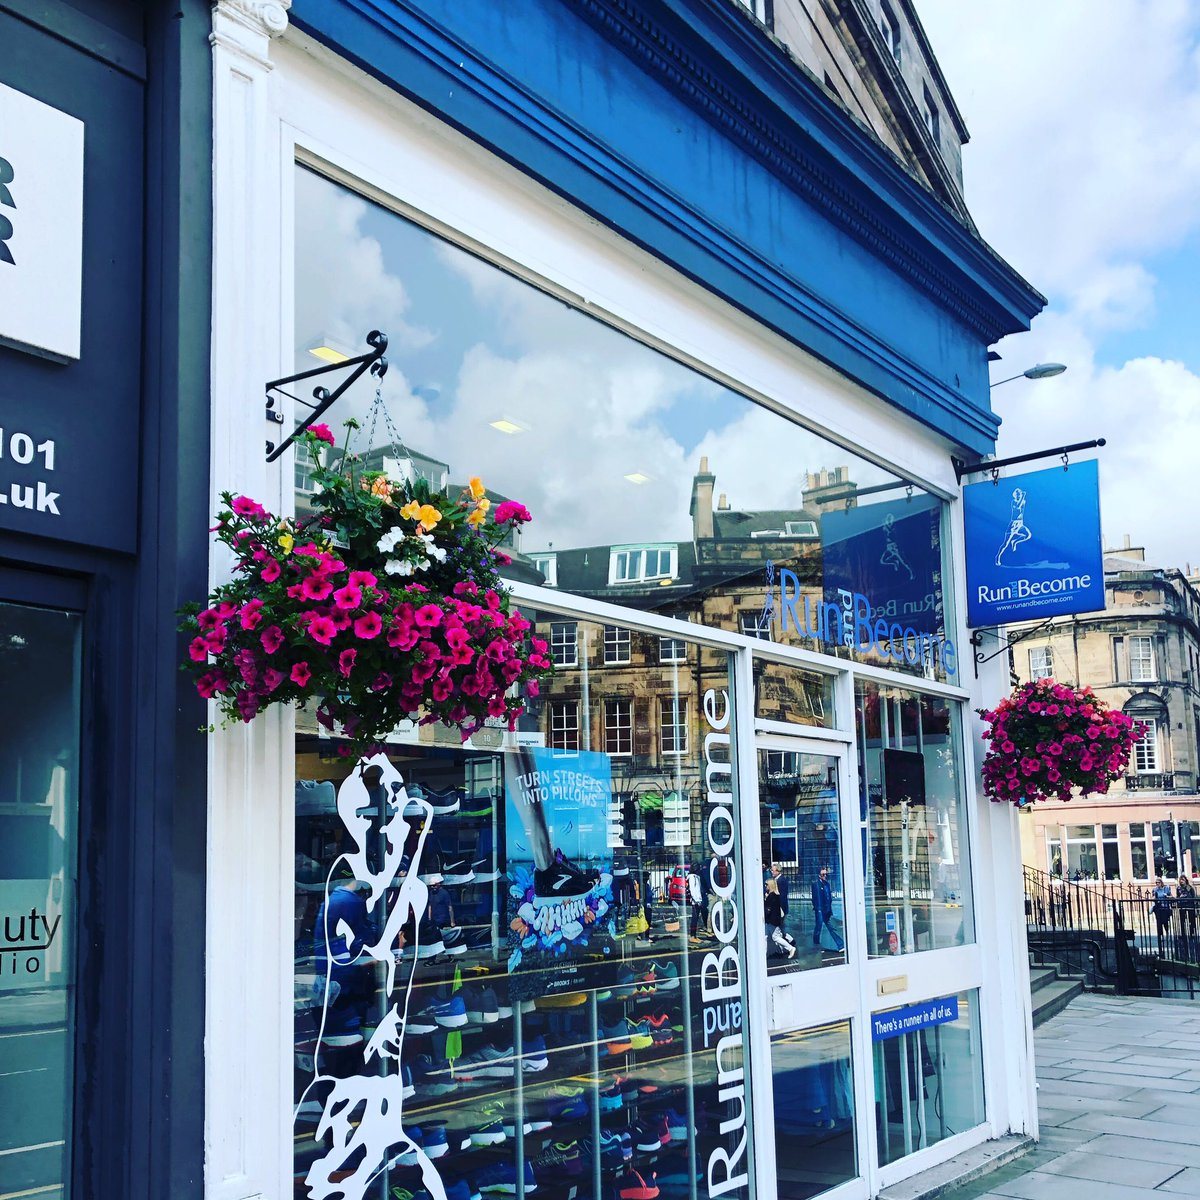 Run and Become sure looks summery with their beautiful flower baskets provided by Edinburgh's West End BID 💐 . . . #hiddengems #takeacloserlook #edimburghswestend #thisisedinburgh #edinburgh @runandbecome1